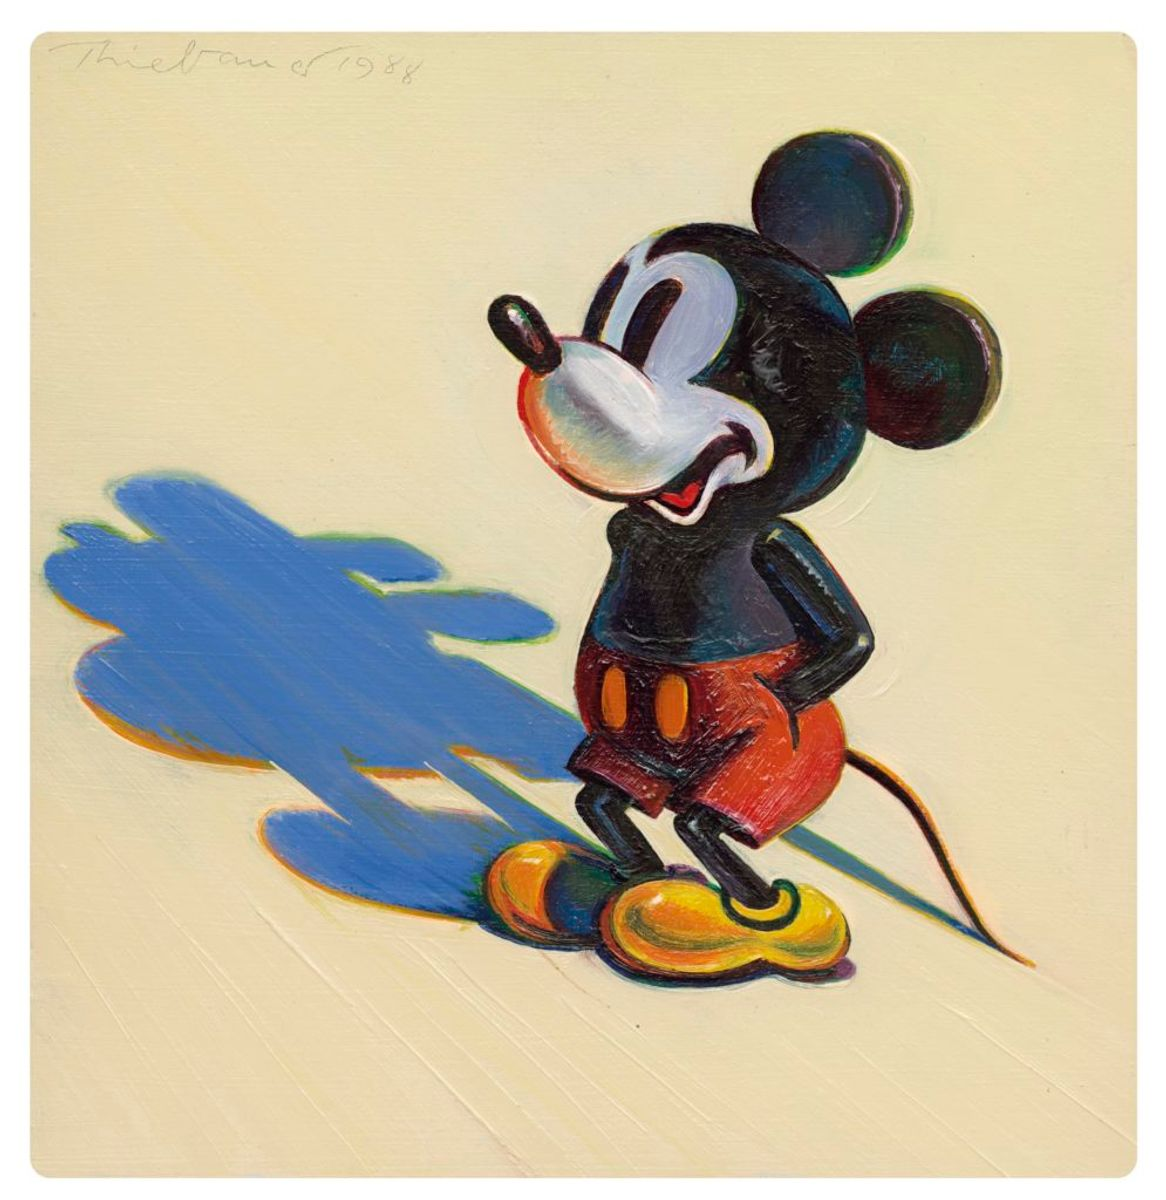 The Art Collection of Walt Disney's Daughter Could Bring in $14 Million at Christie's This Week